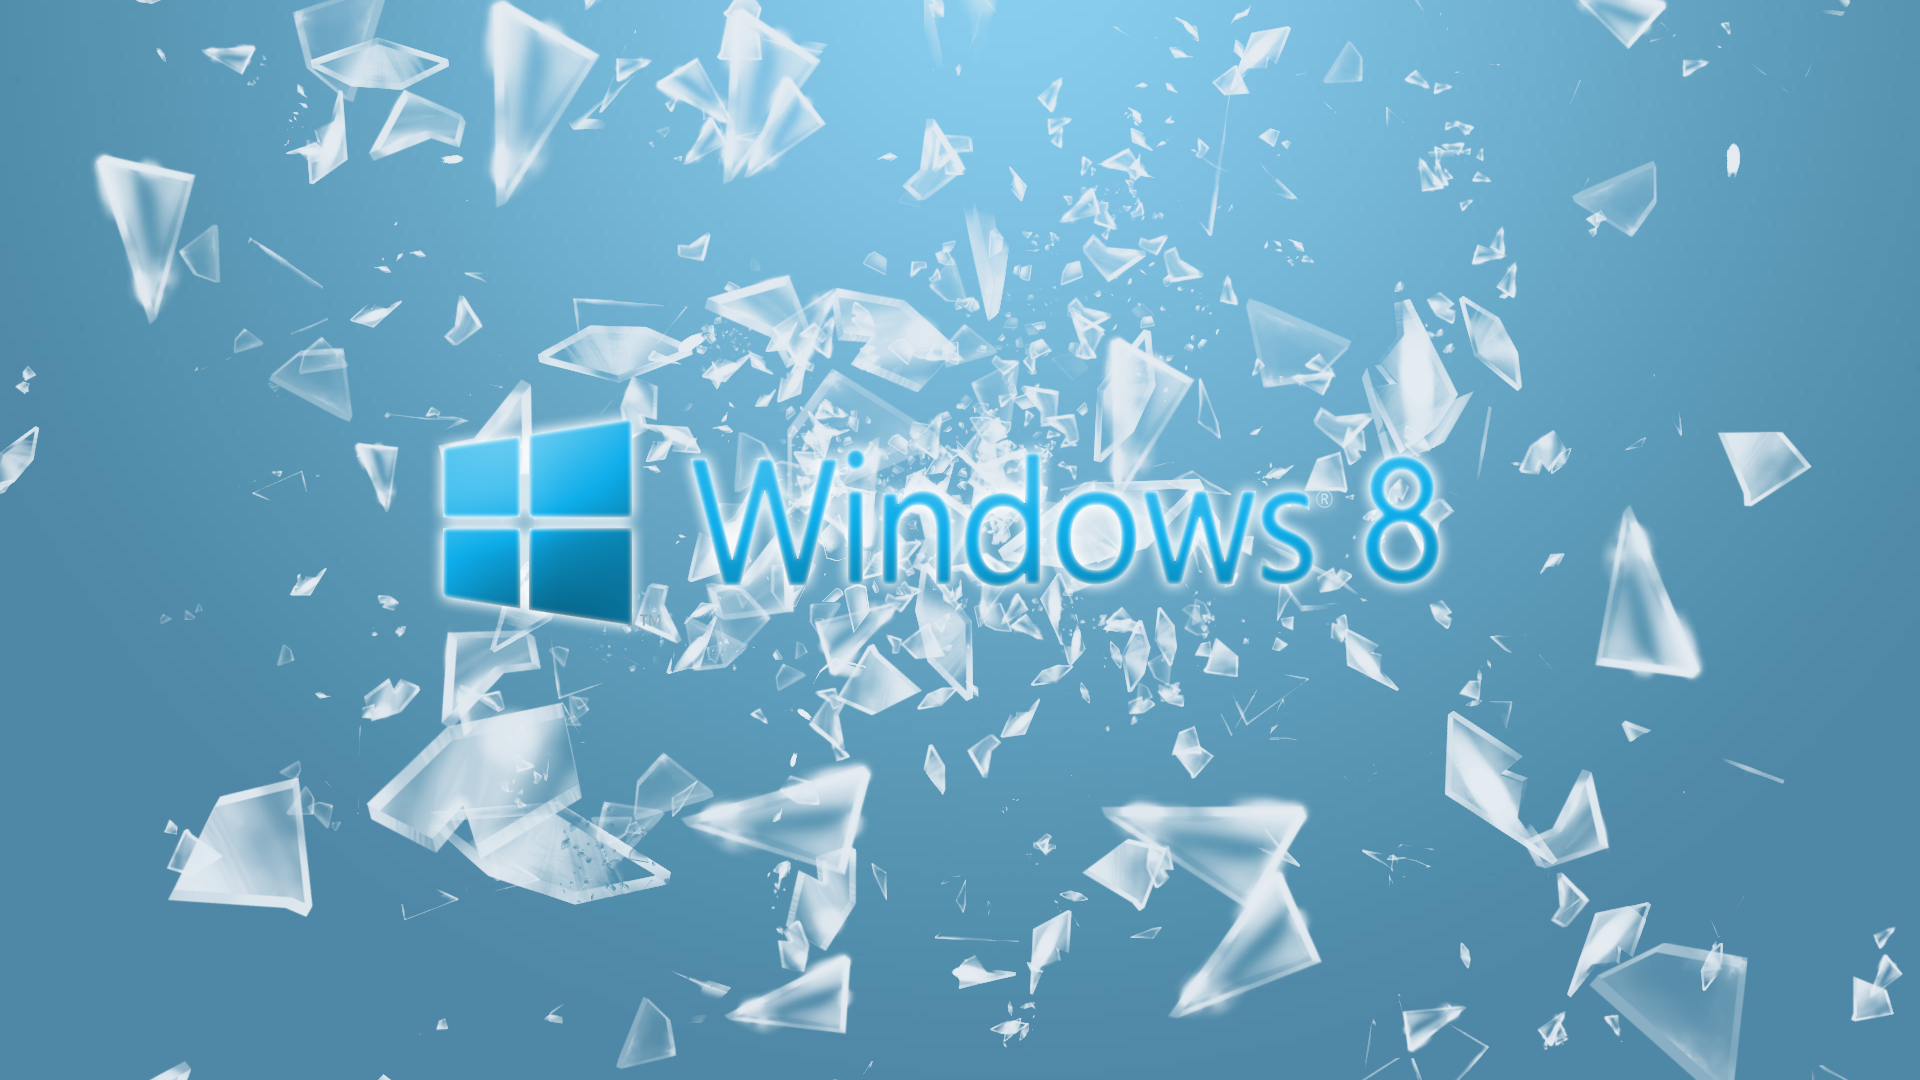 Windows 8 Hd Wallpaper Looking For Screen Savers Wallpapers Background To Make My New Os Pop Windows Wallpaper Wallpaper Pc Laptop Wallpaper Desktop Wallpapers